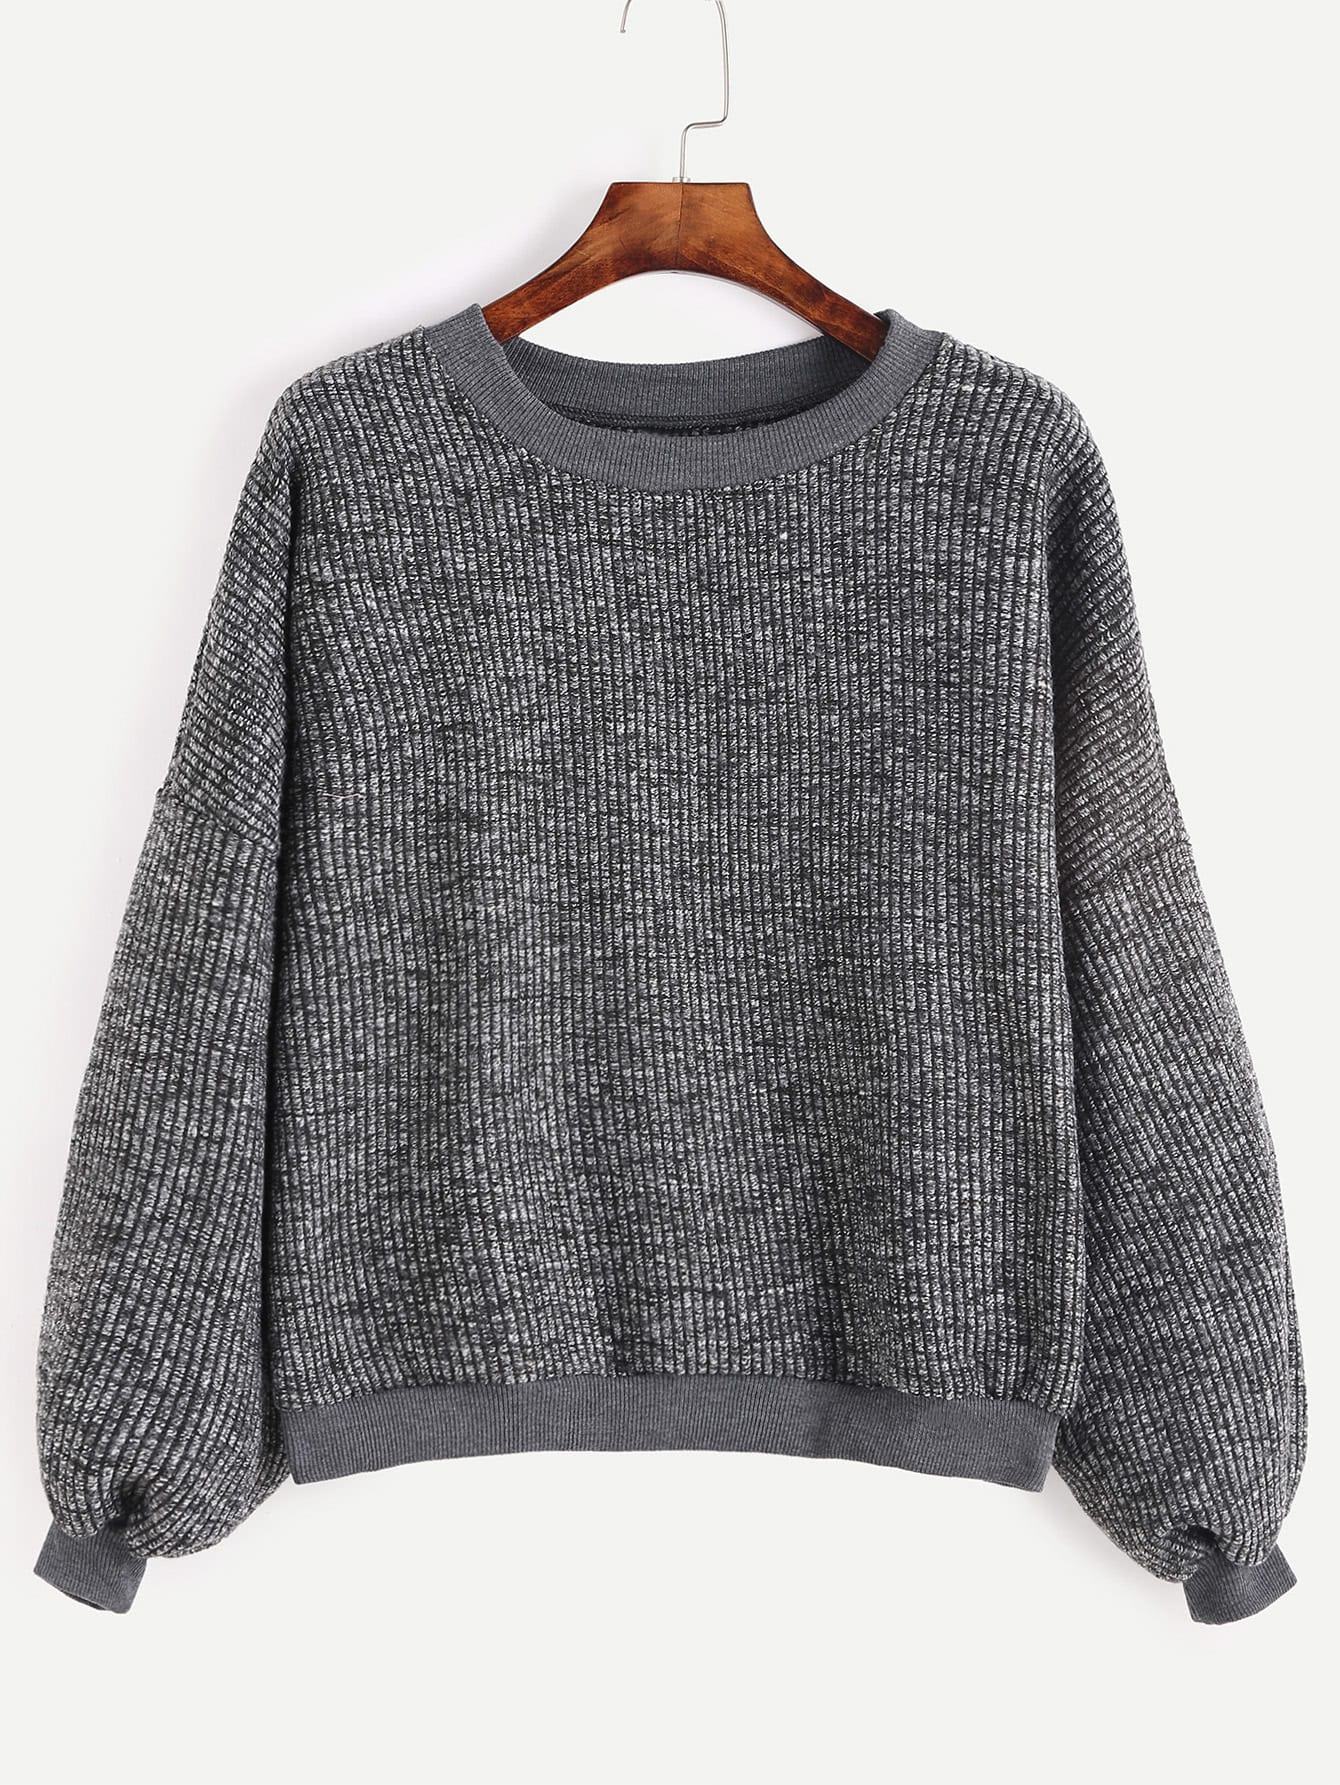 Dark Grey Drop Shoulder Ribbed Sweater sweater160929107